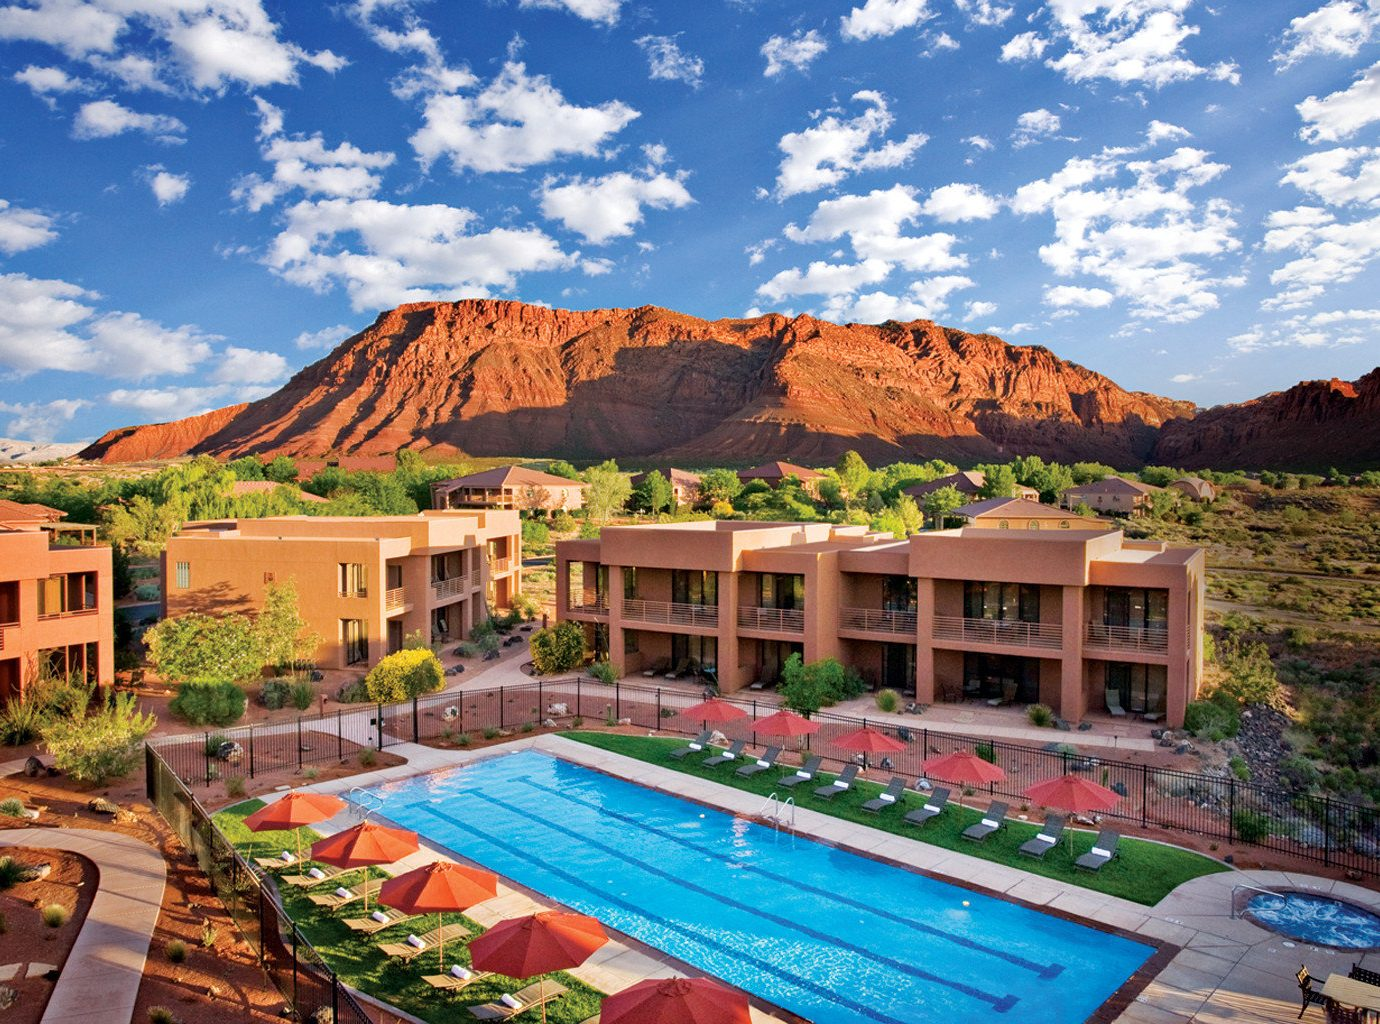 Health + Wellness Hotels Meditation Retreats Trip Ideas Yoga Retreats mountain sky outdoor property estate vacation canyon Resort tourism real estate Village swimming pool colorful